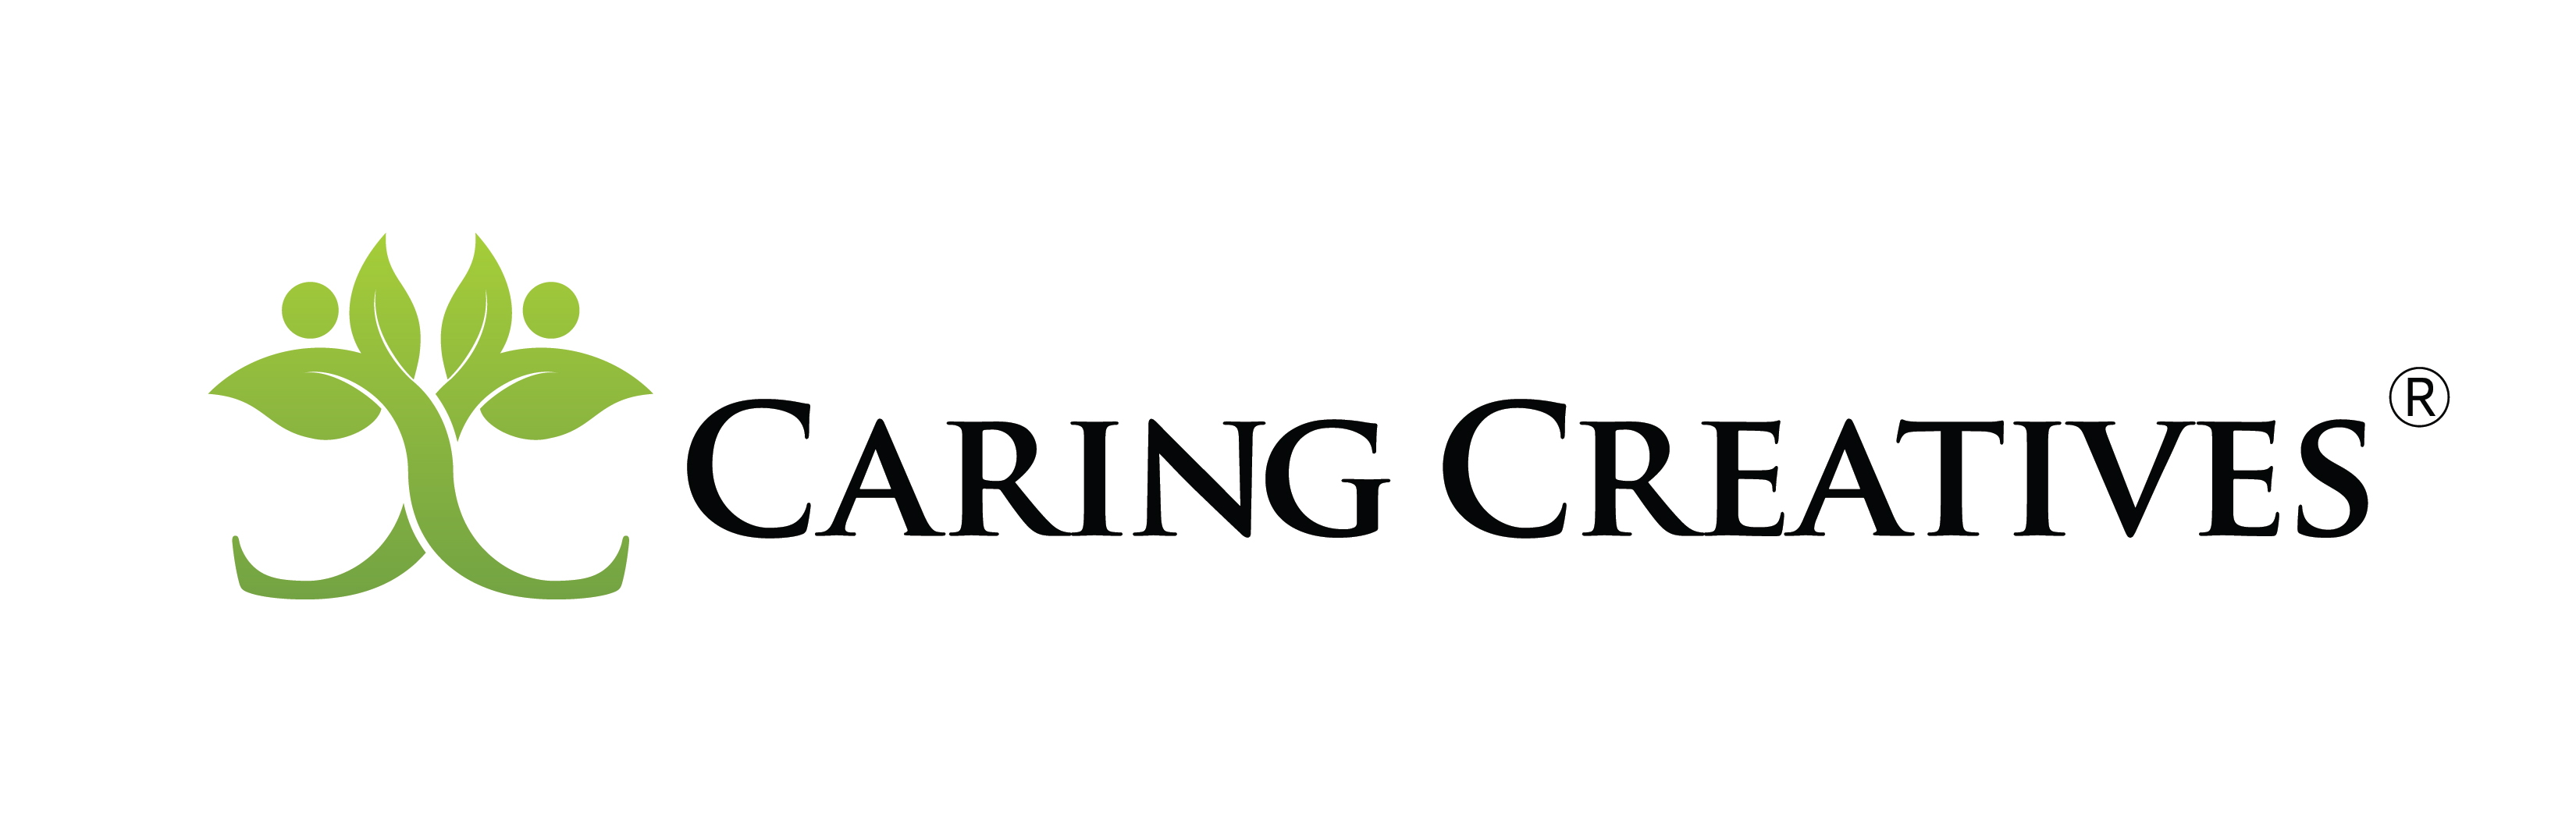 Caring Creatives, LLC, San Francisco, CA logo